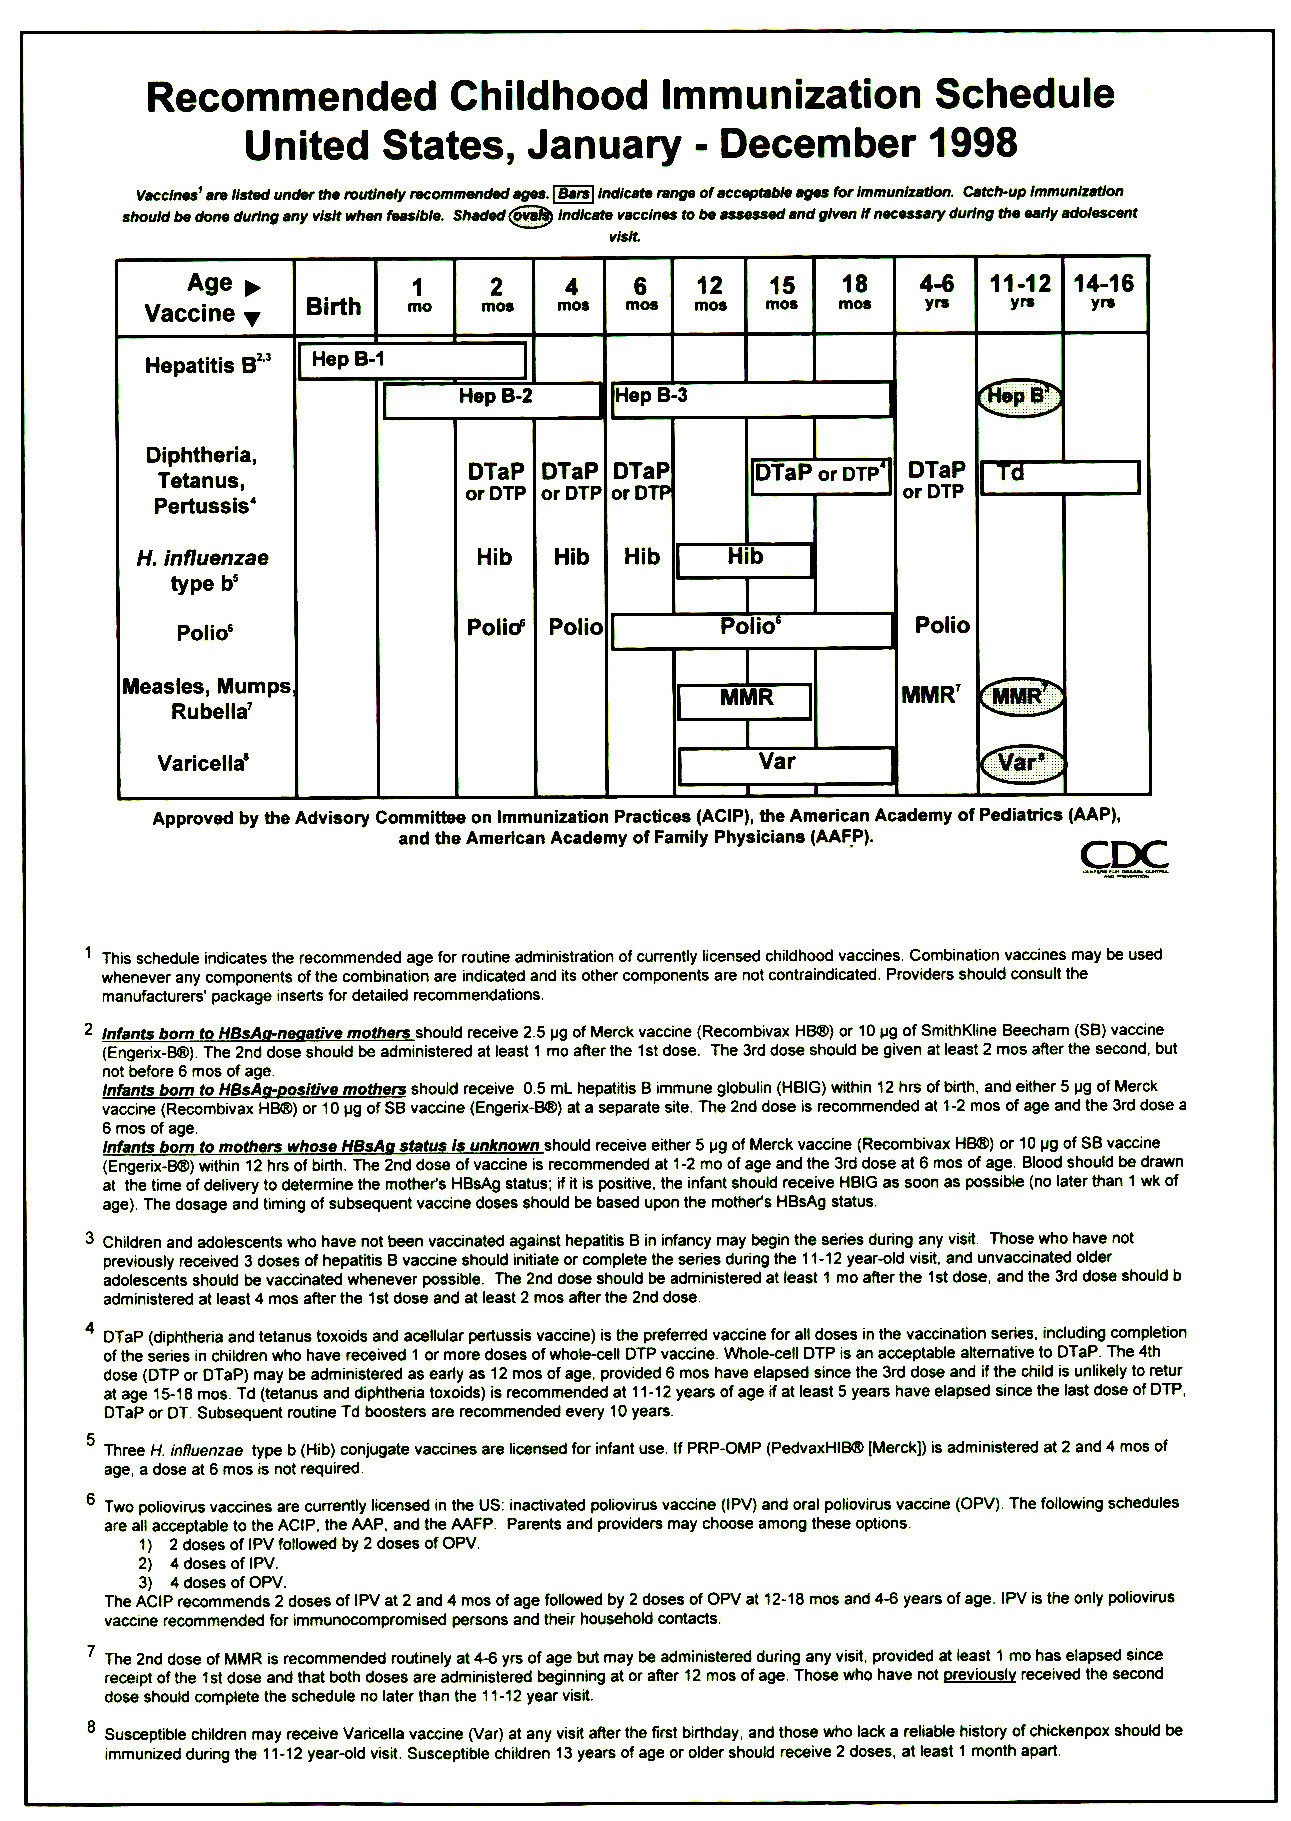 Recommended Childhood Immunization Schedule United States, January - December 1998